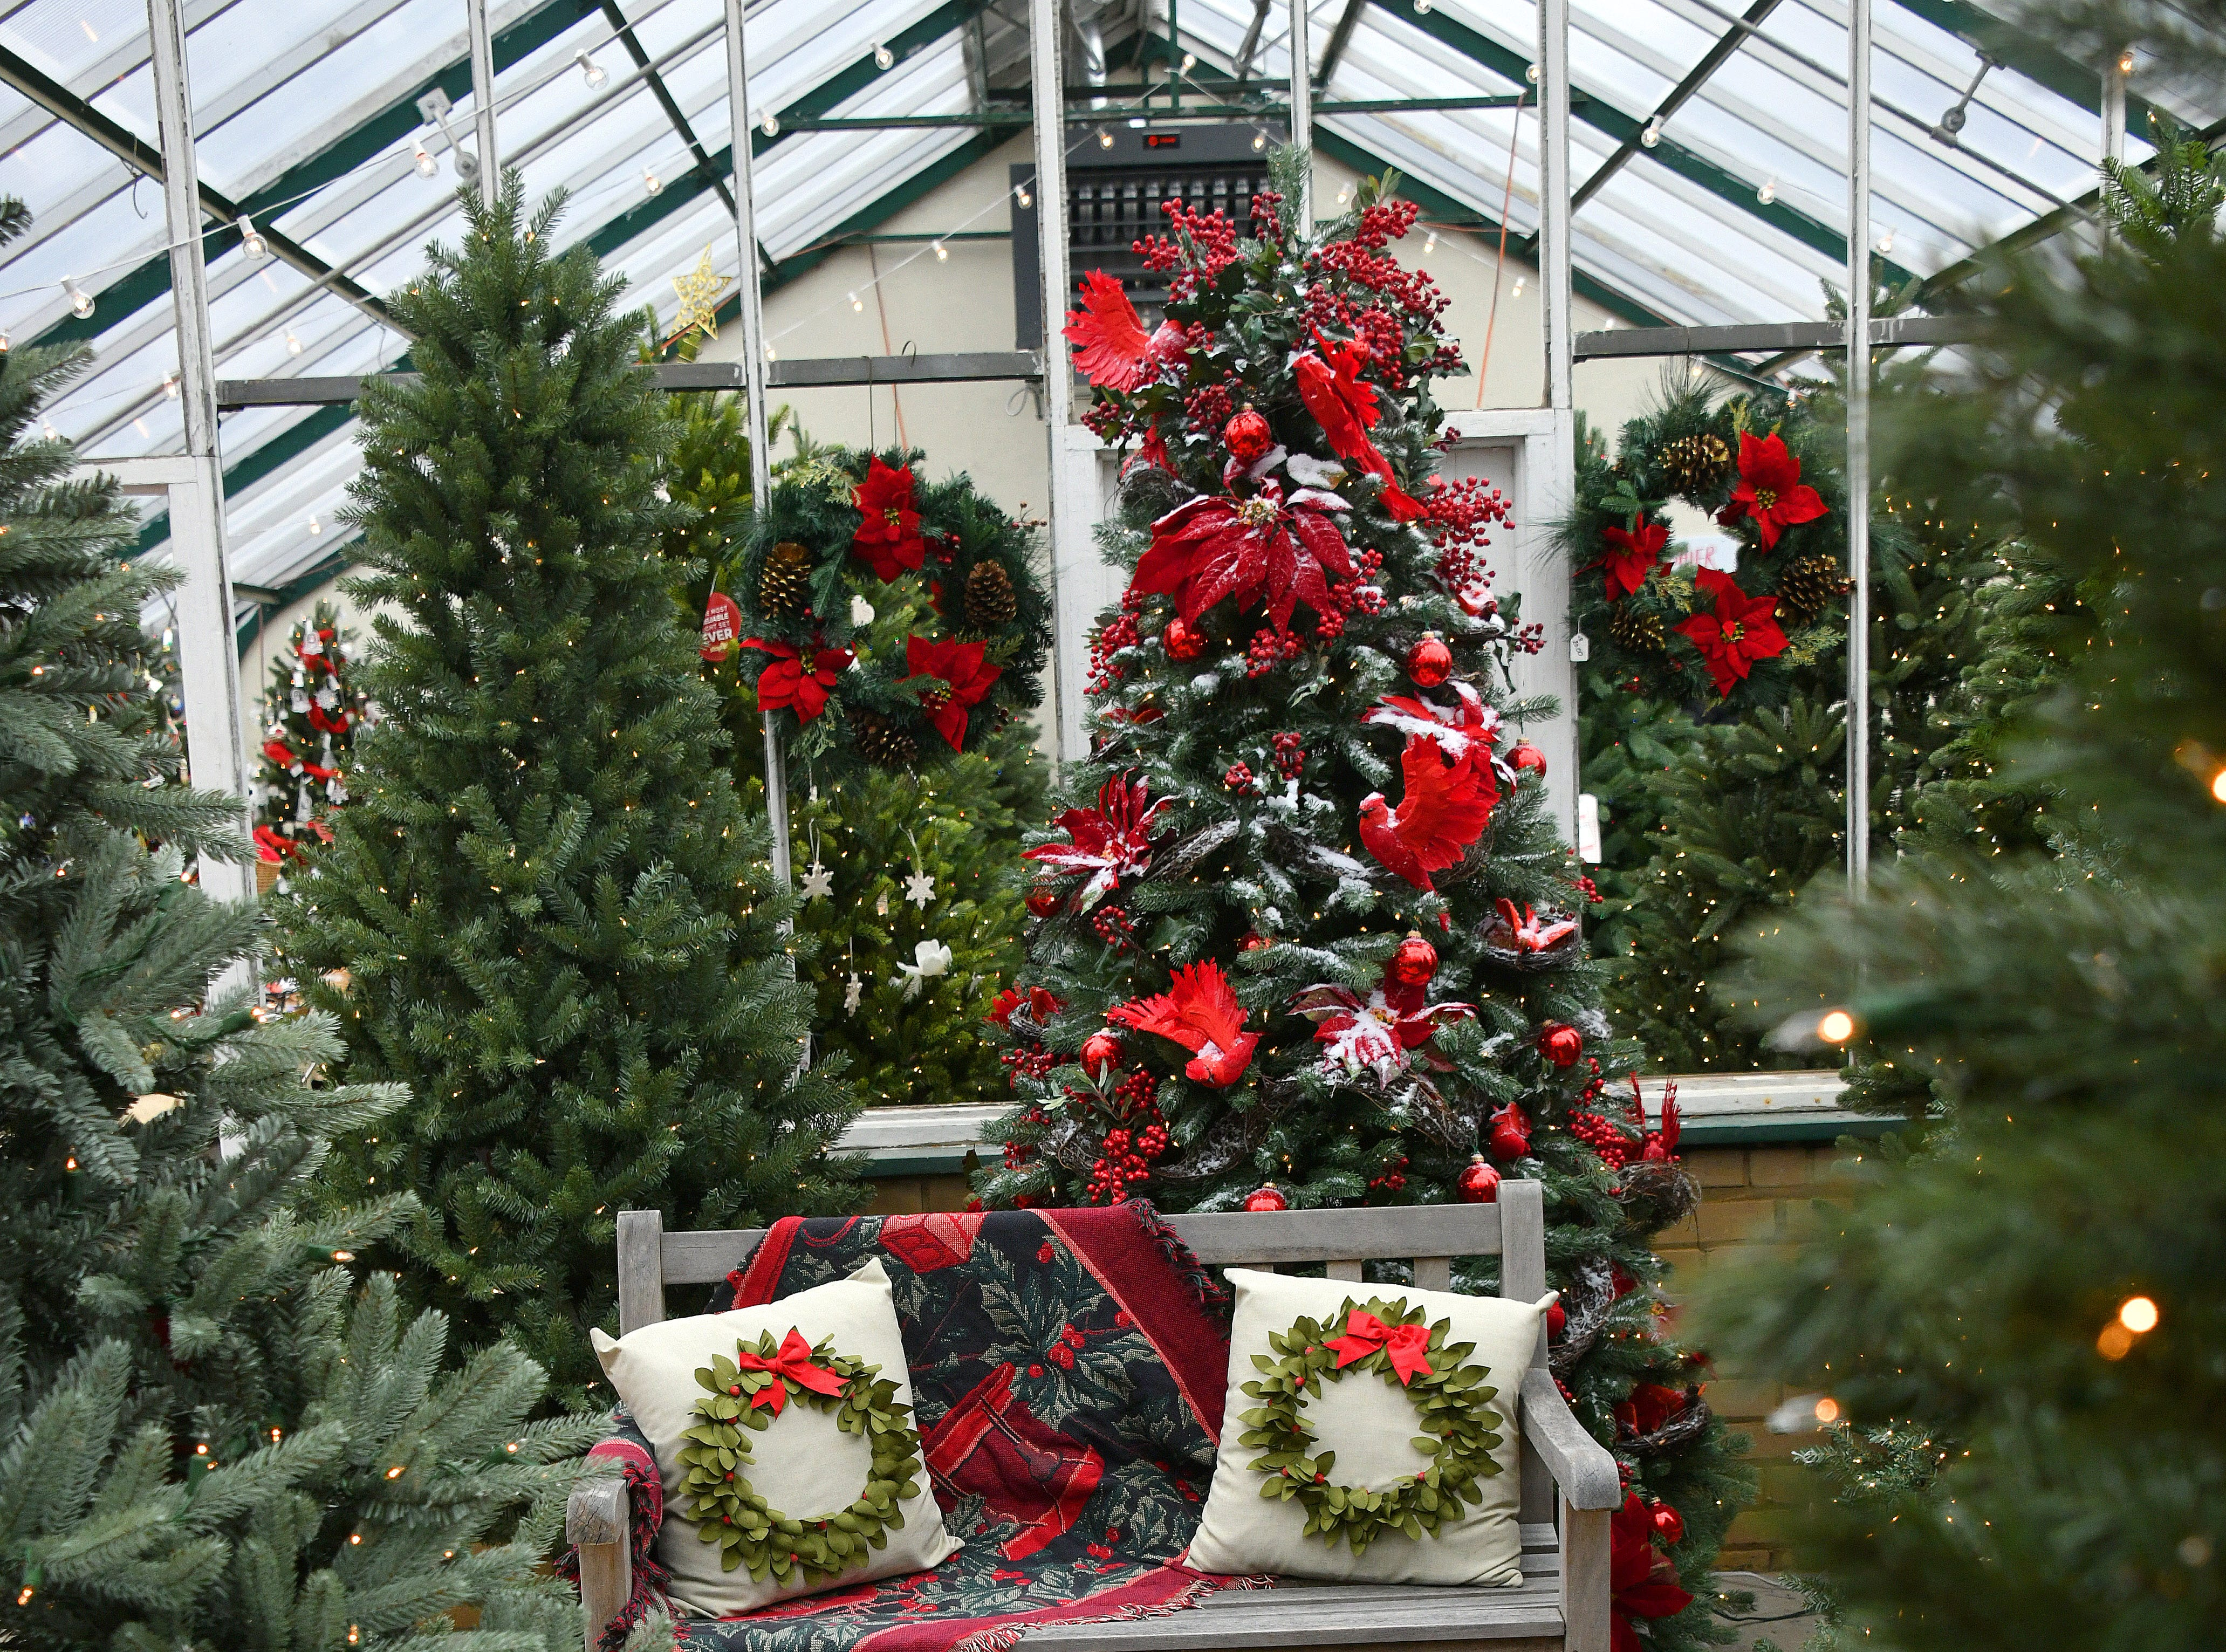 A cozy bench is nestled among Christmas trees in the greenhouse, ready for family pictures. The manor had extensive gardens and a large greenhouse, as the Earharts were avid gardeners.